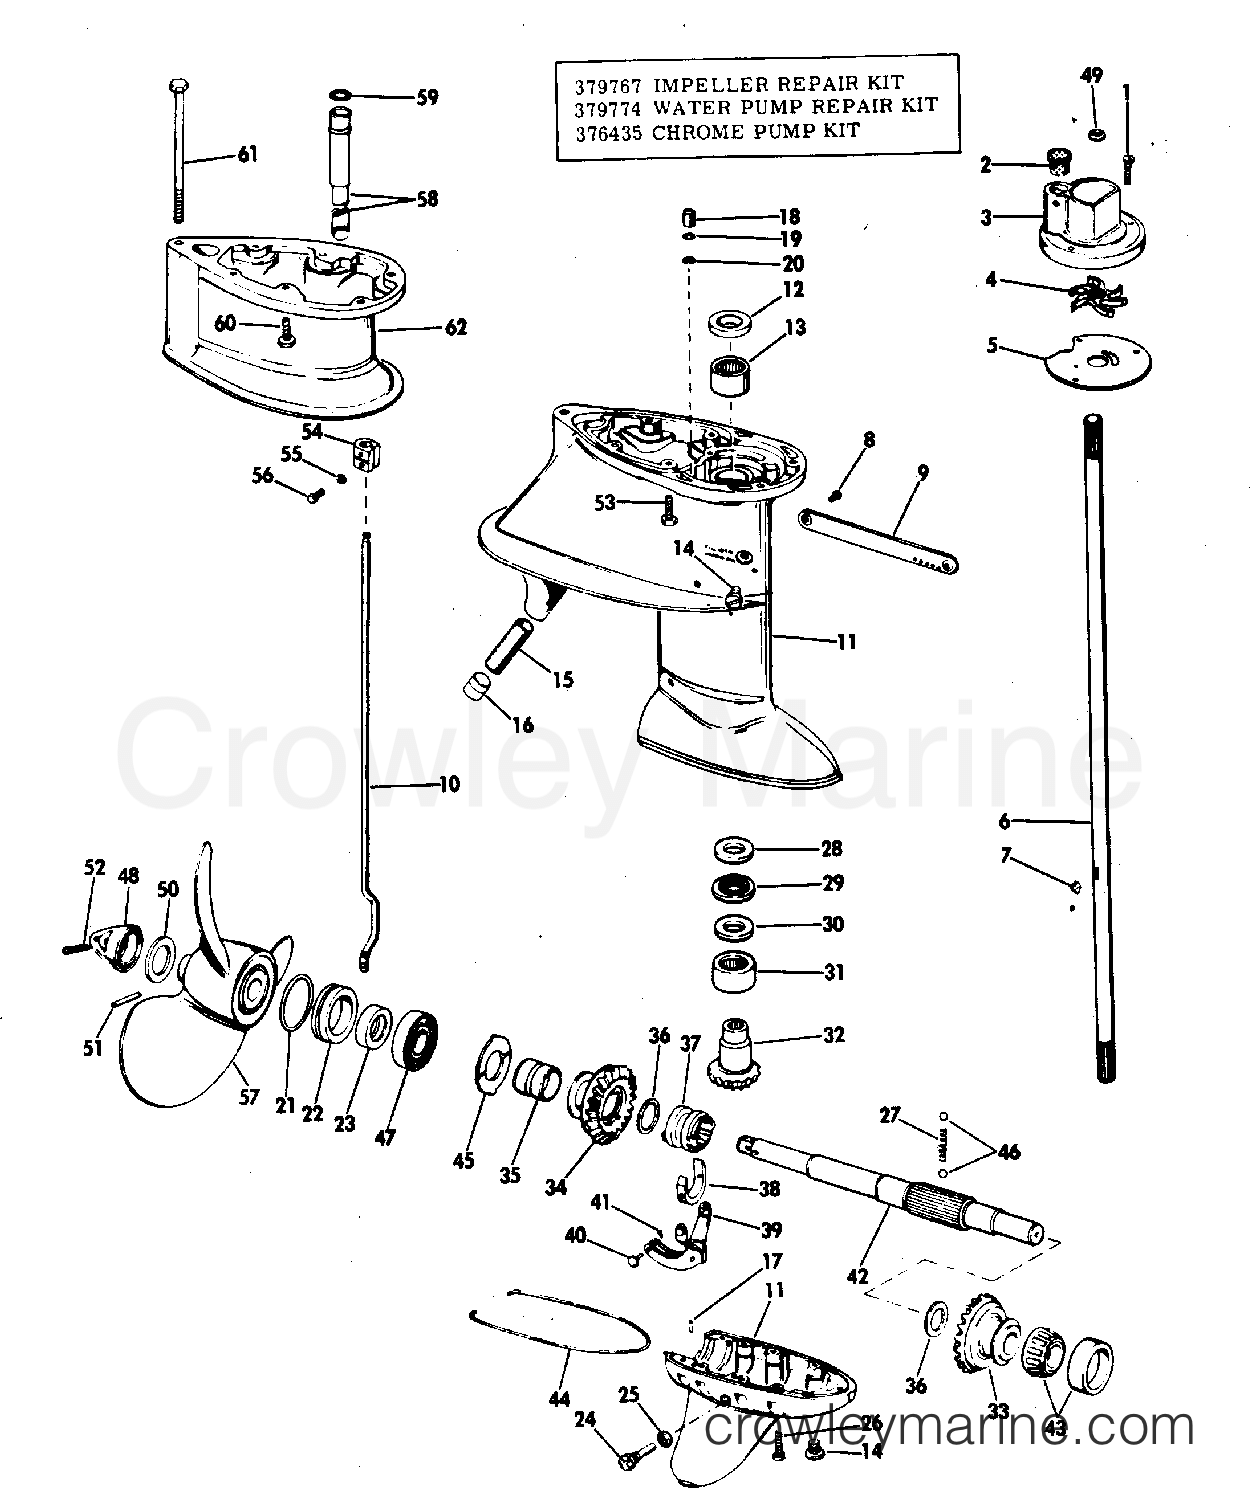 Evinrude Fuel Pump Diagram